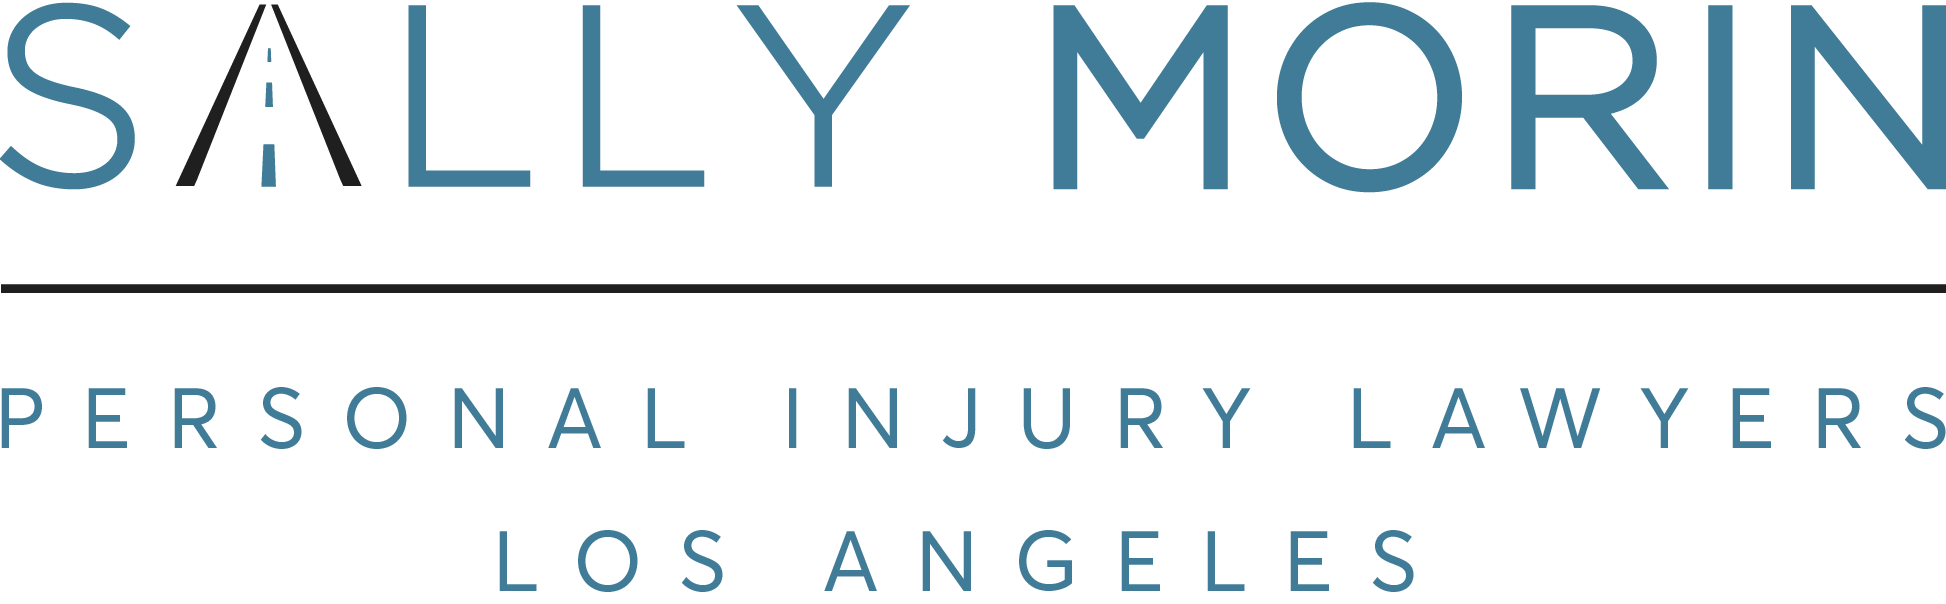 Personal Injury Lawyer Los Angeles, Accident Attorneys